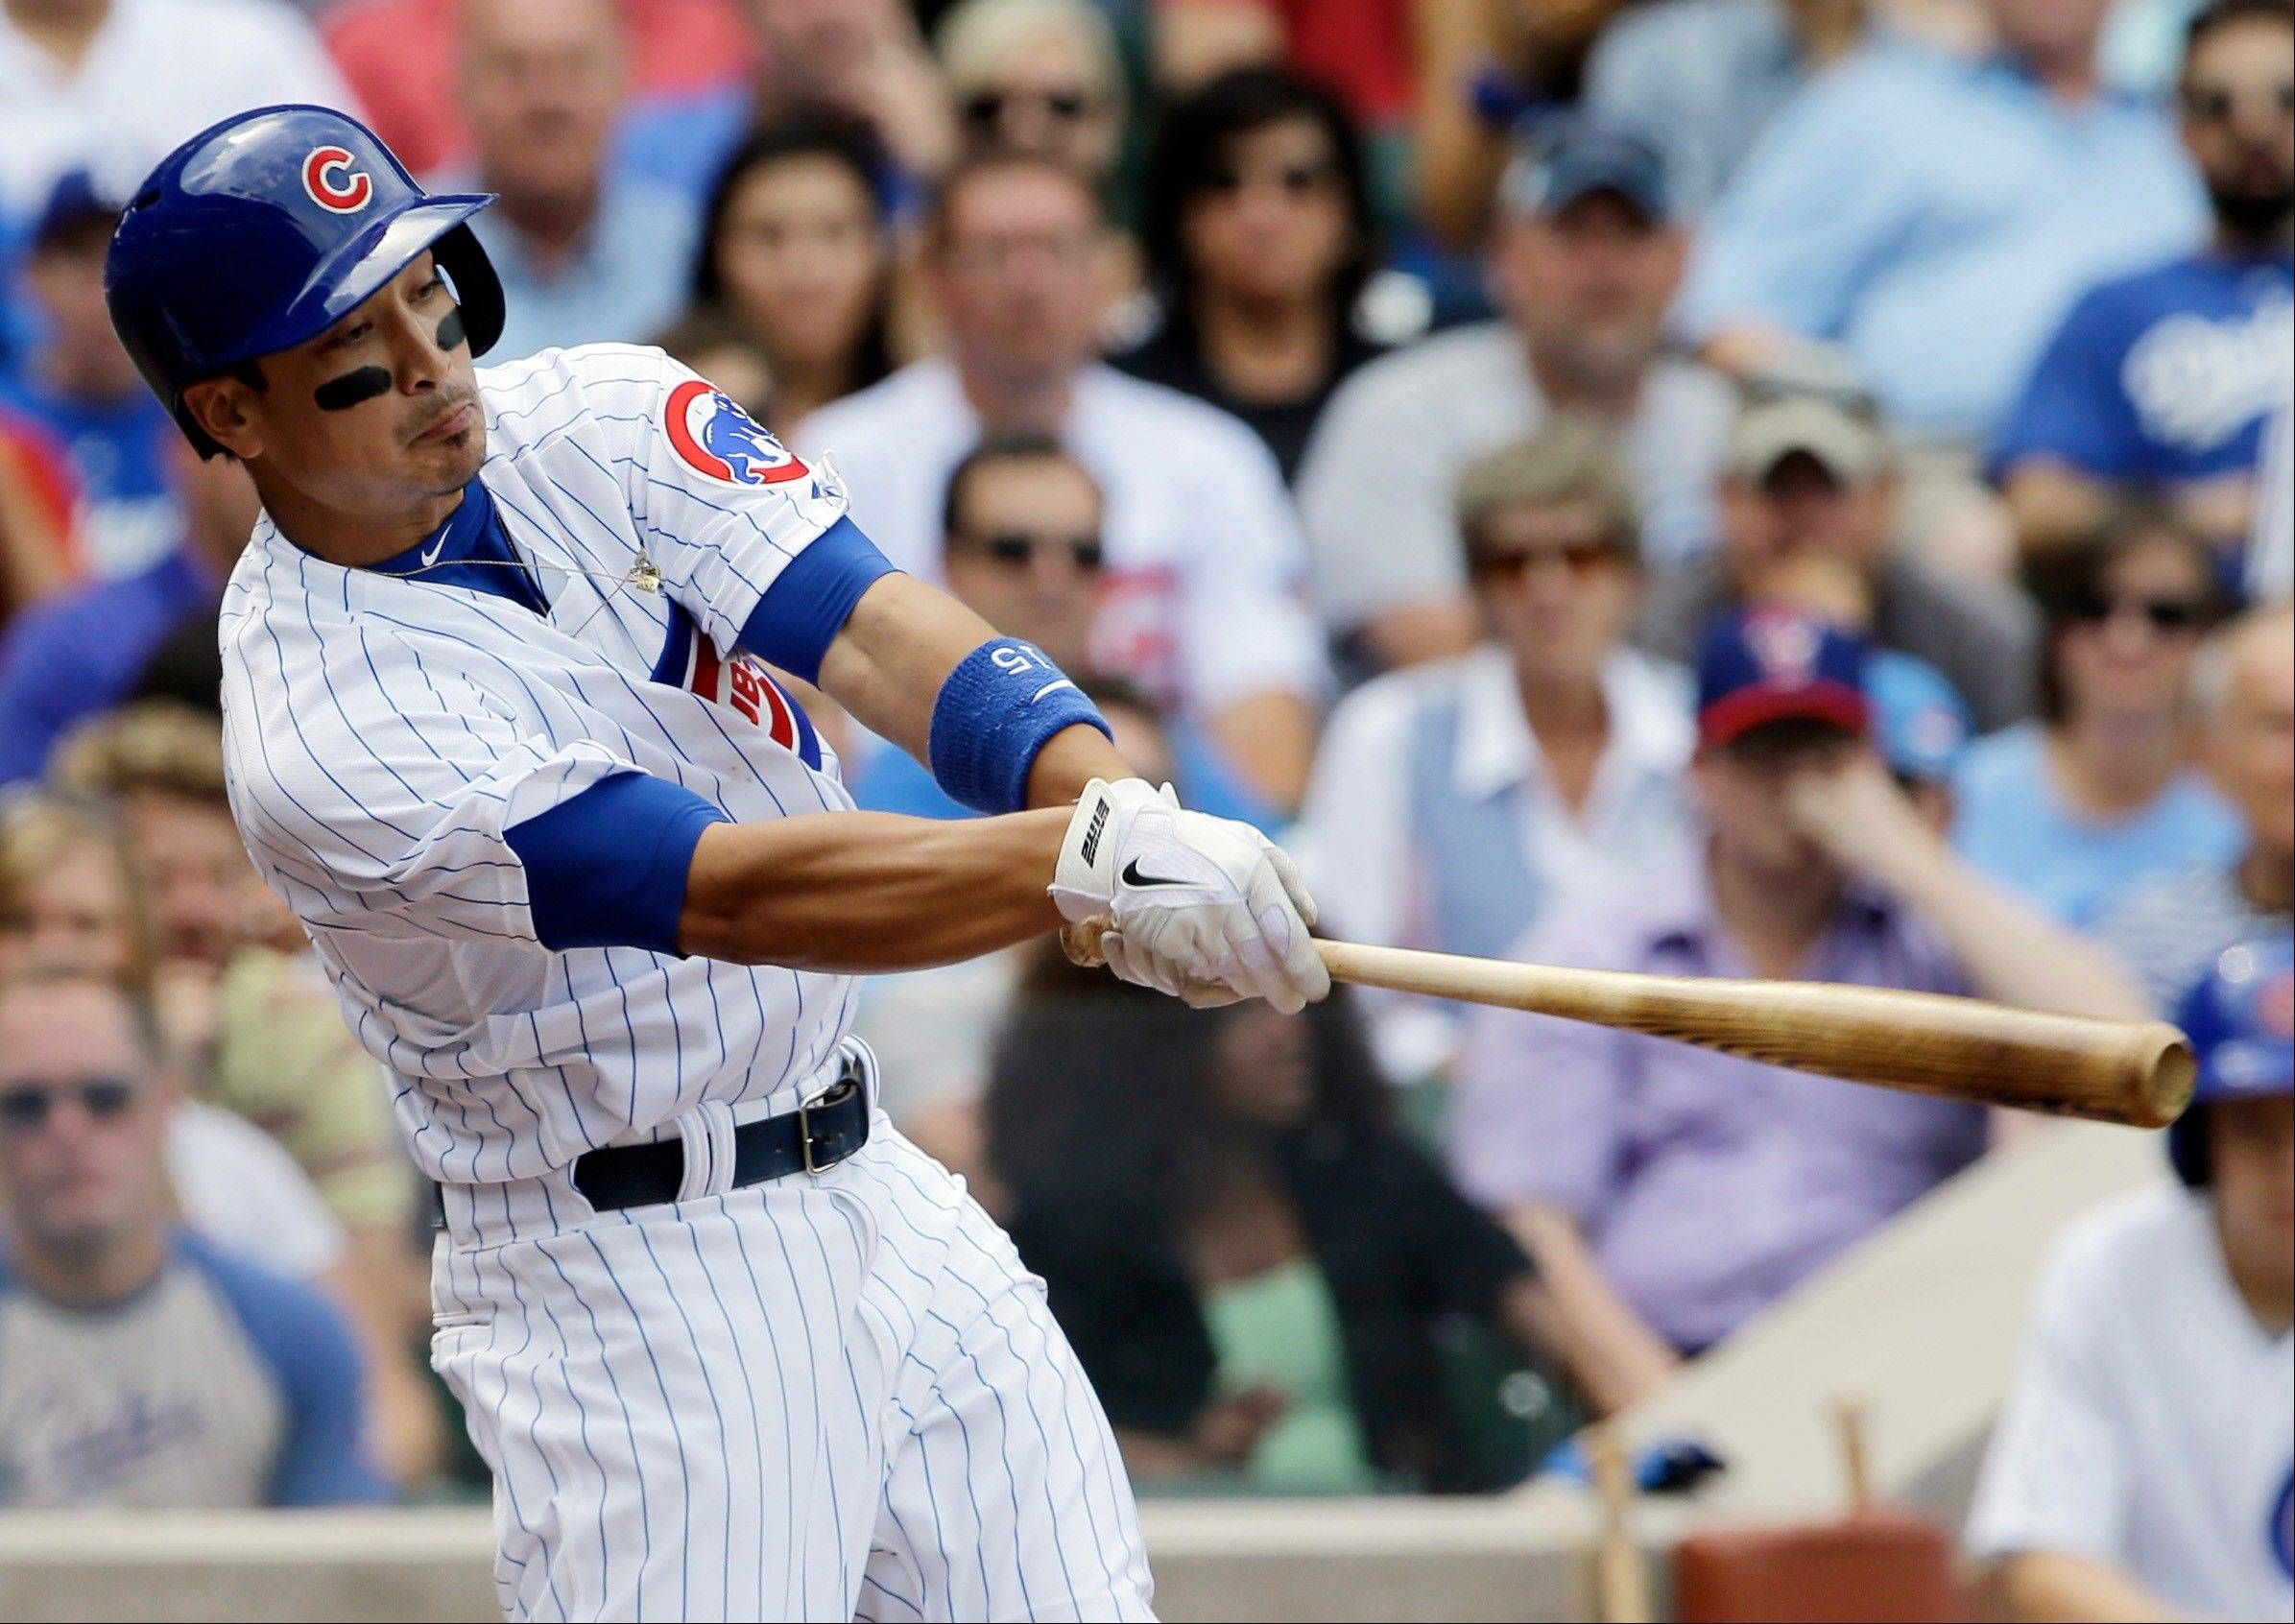 Chicago Cubs' Darwin Barney hits an RBI double against the Los Angeles Dodgers during the second inning of a baseball game on Friday, Aug. 2, 2013, in Chicago. (AP Photo/Nam Y. Huh)